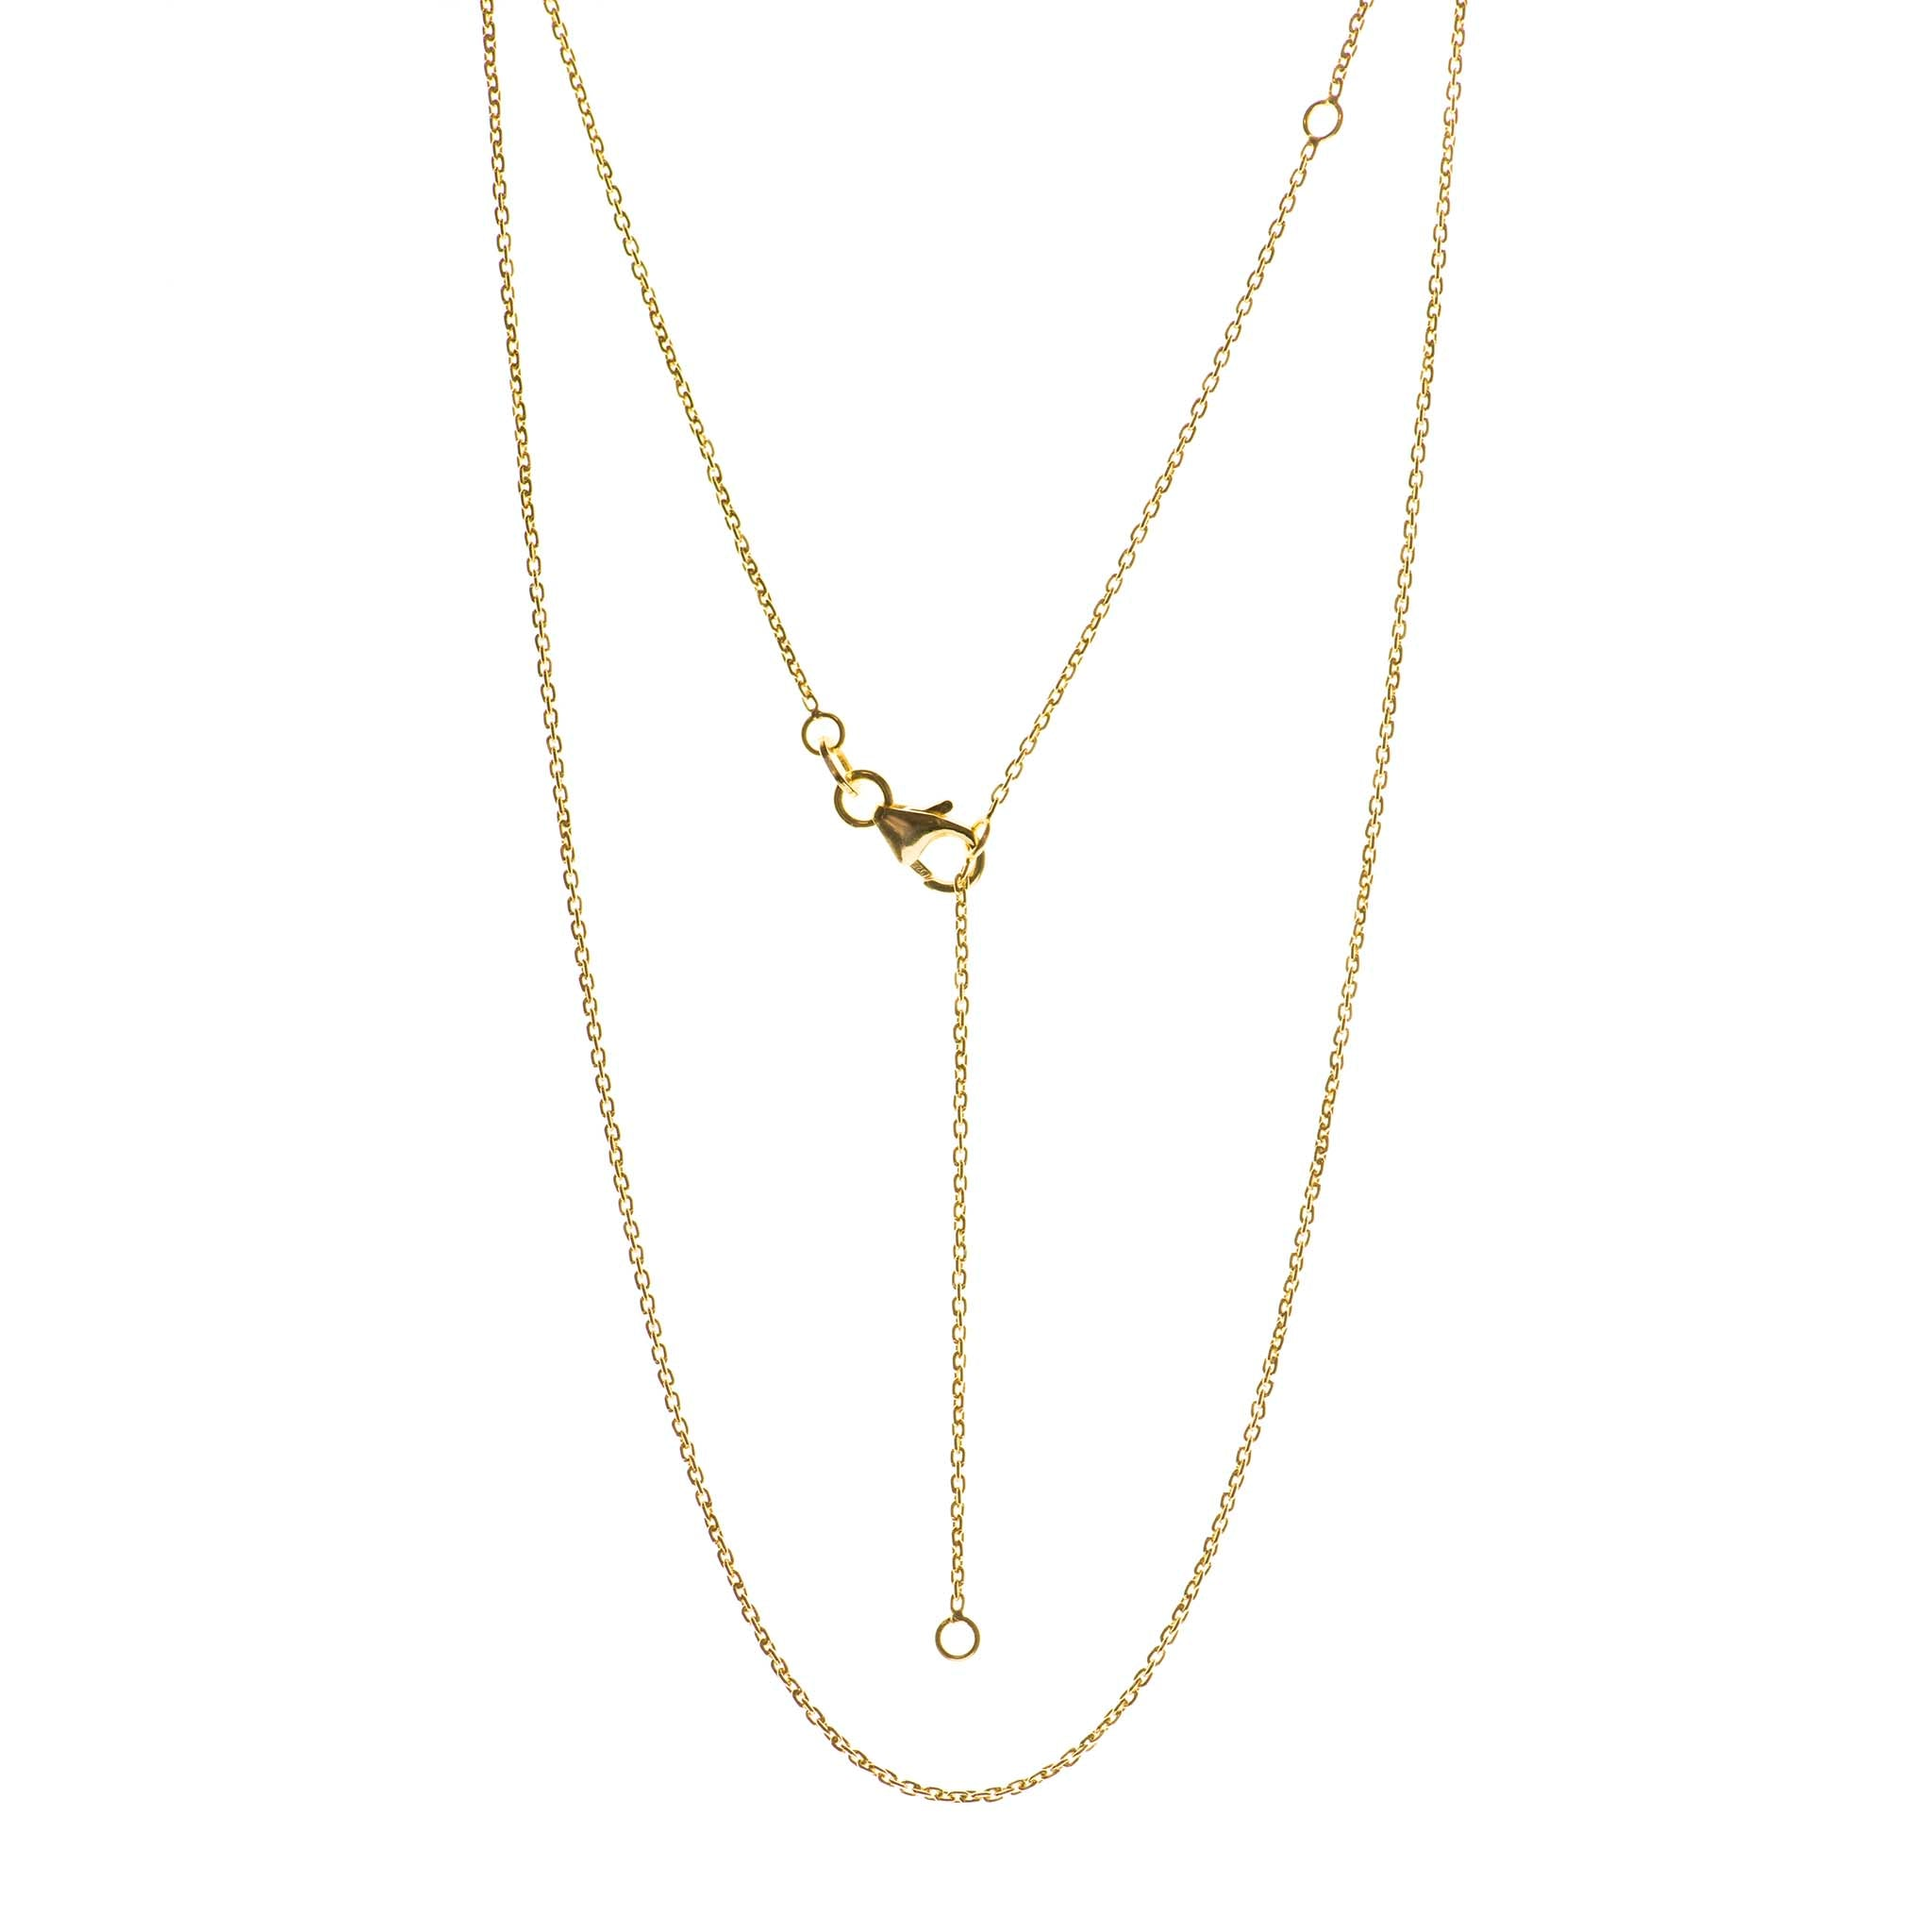 Yellow gold adjustable 16-20 Inch chain